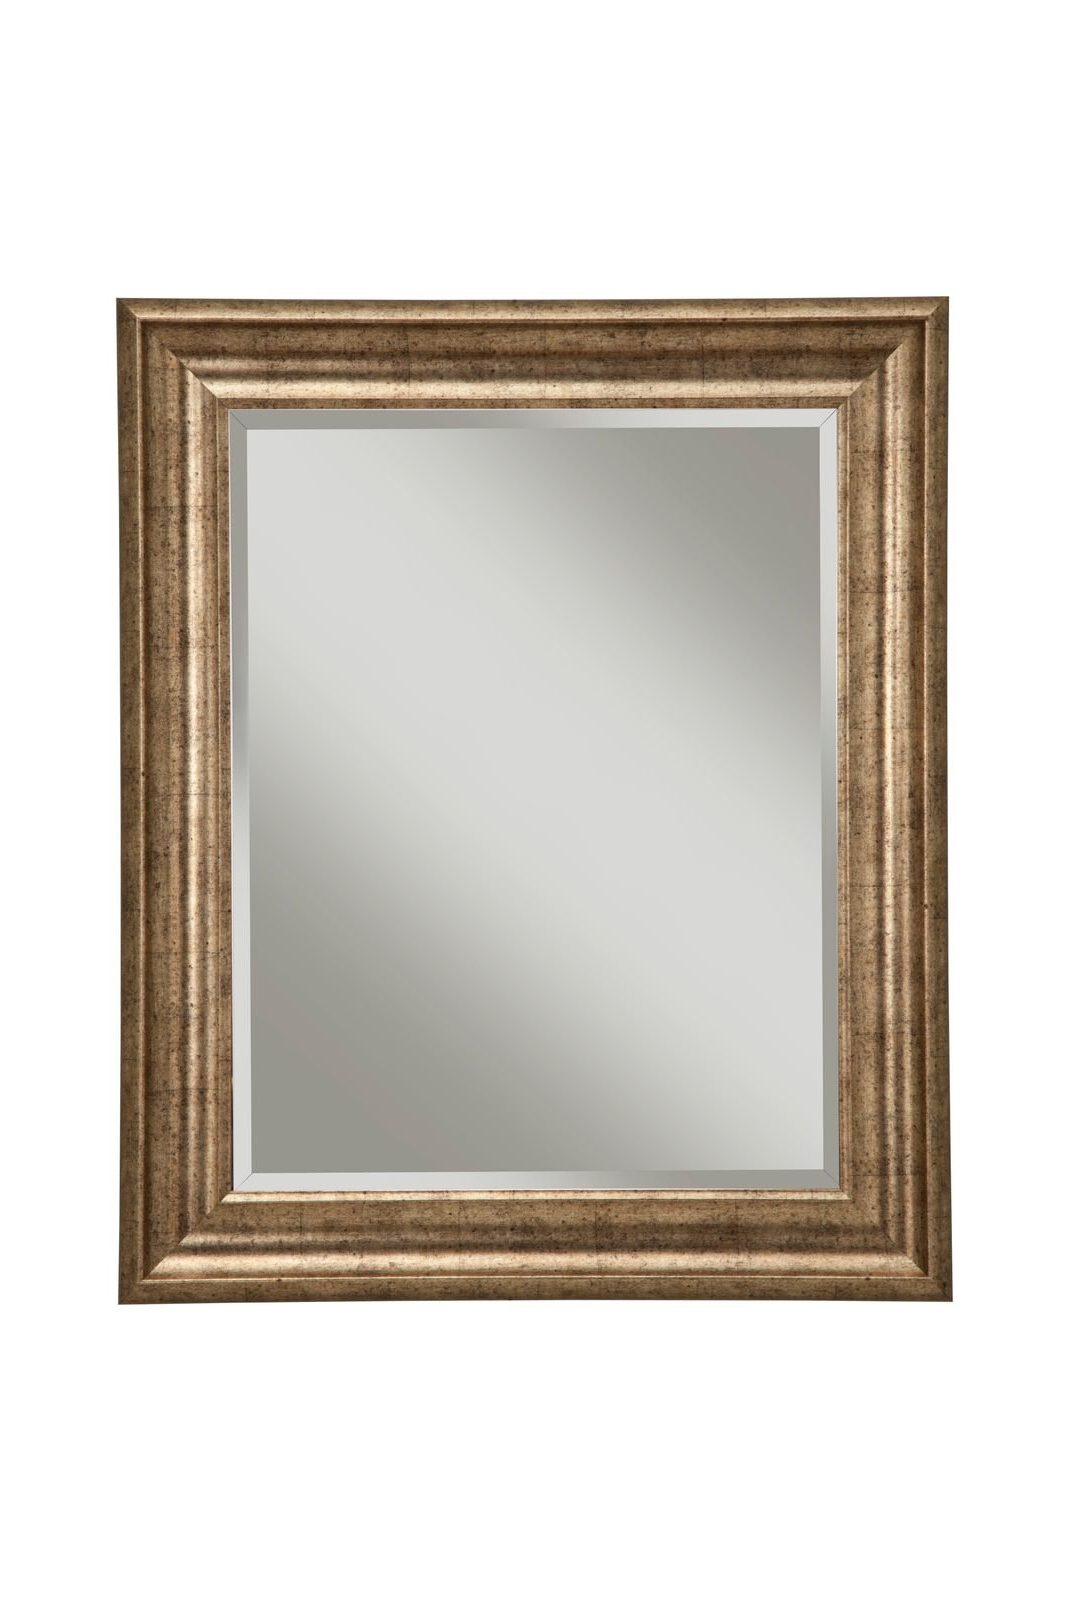 Newest Northcutt Accent Mirror Intended For Northcutt Accent Mirrors (Gallery 1 of 20)